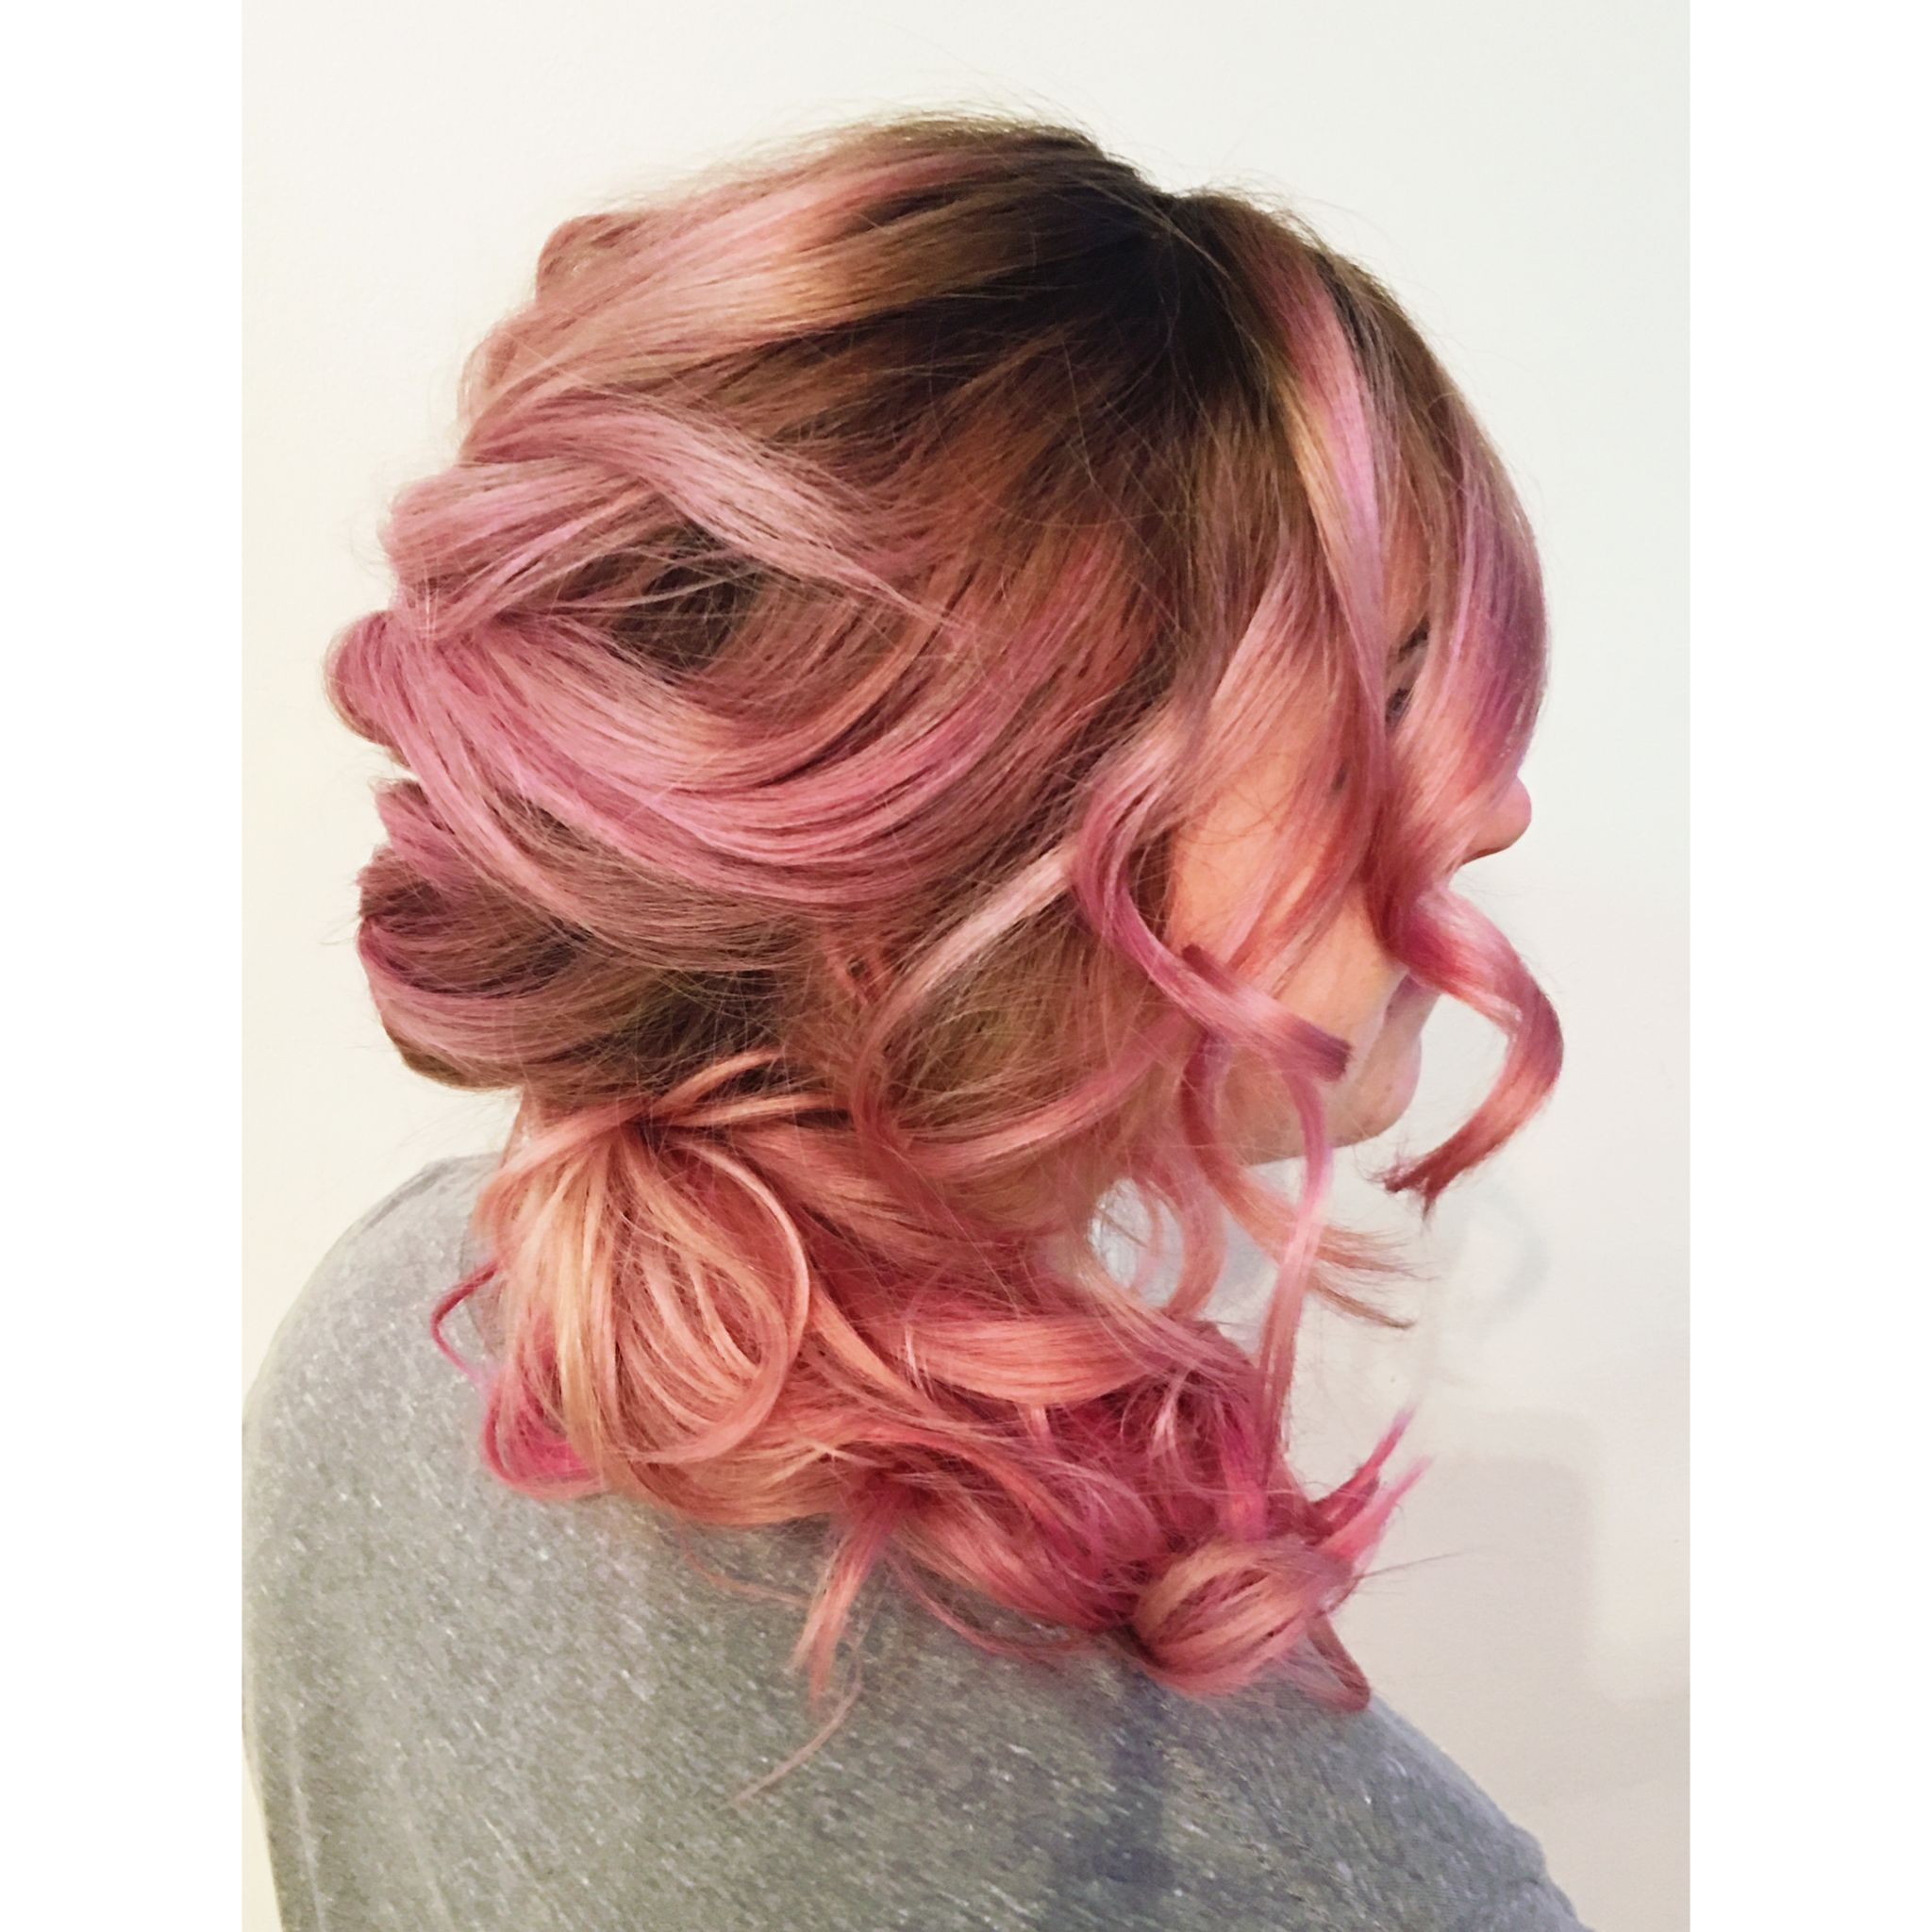 dusty rose gold hair done using paul mitchell shines 1 3 4oz pink champagne 1 4oz shiny penny. Black Bedroom Furniture Sets. Home Design Ideas